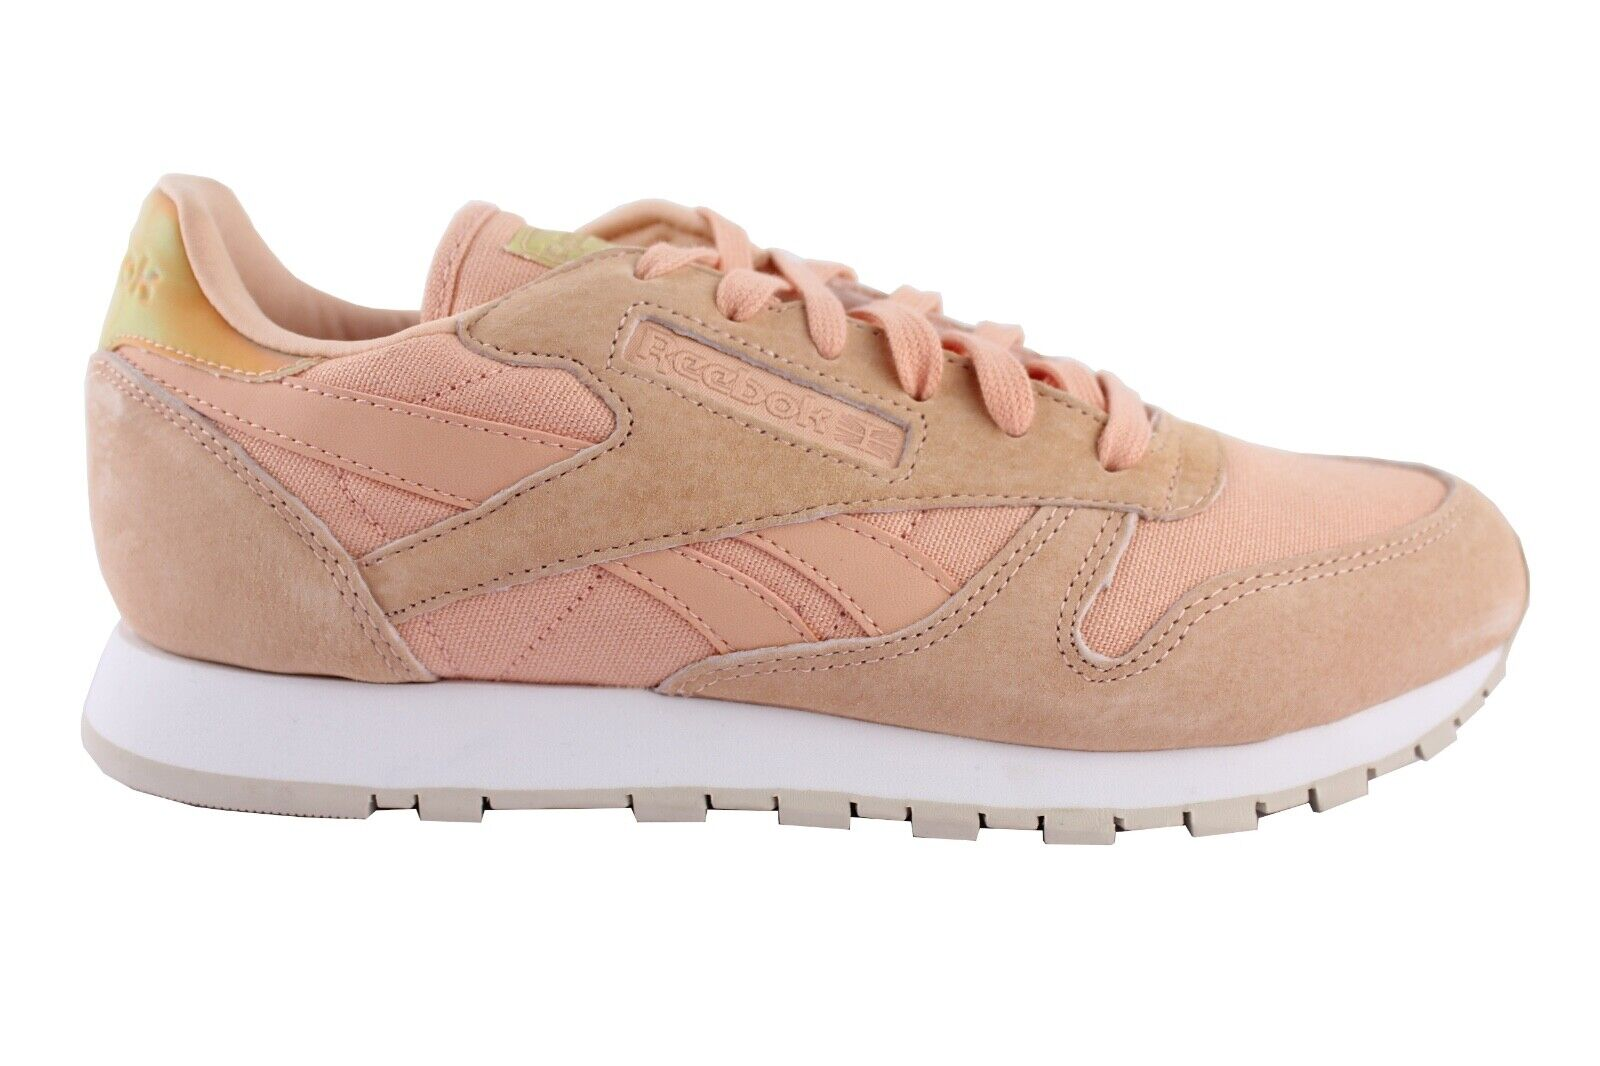 Reebok Classic Leather Trainers shoes Leather Pink V69805 Size 39